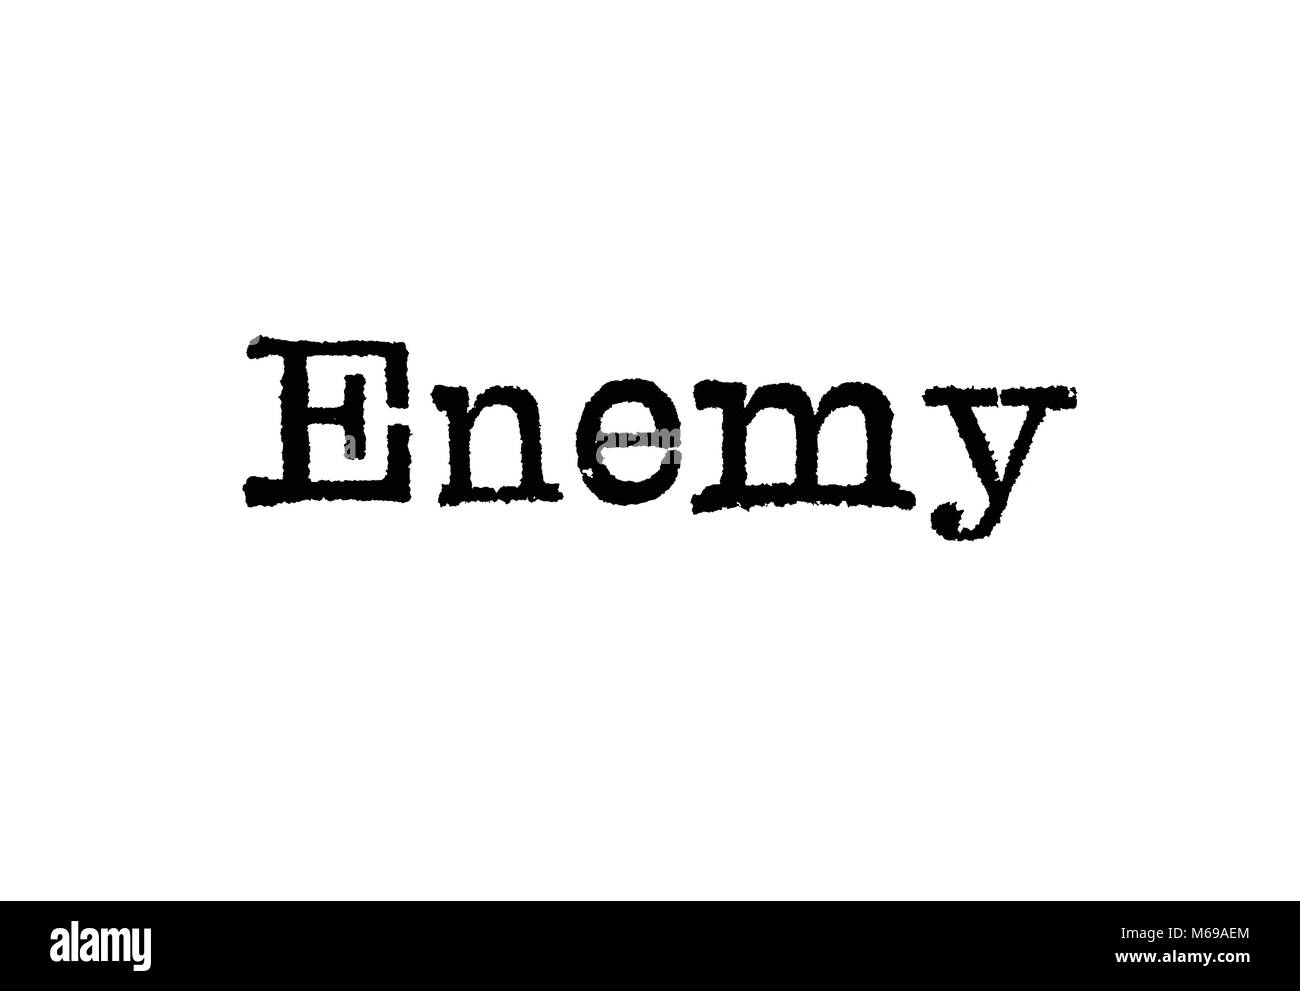 The word Enemy from a typewriter on a white background - Stock Image